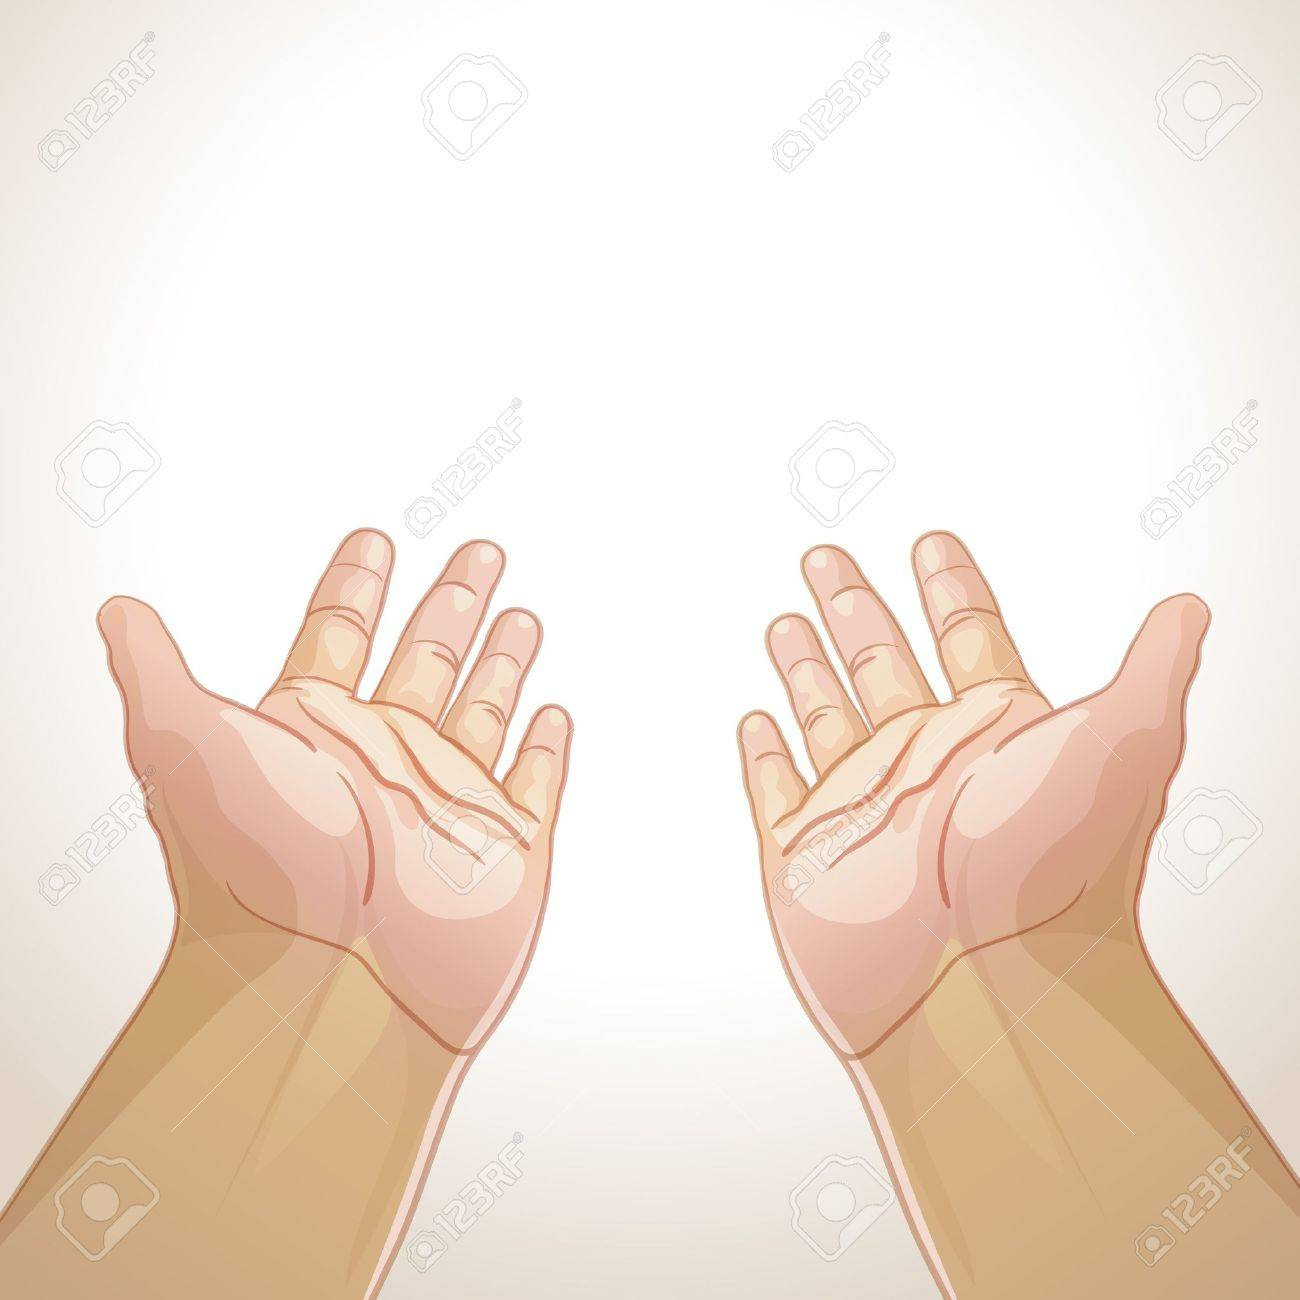 illustration of an outstretched hands Stock Vector - 13646295